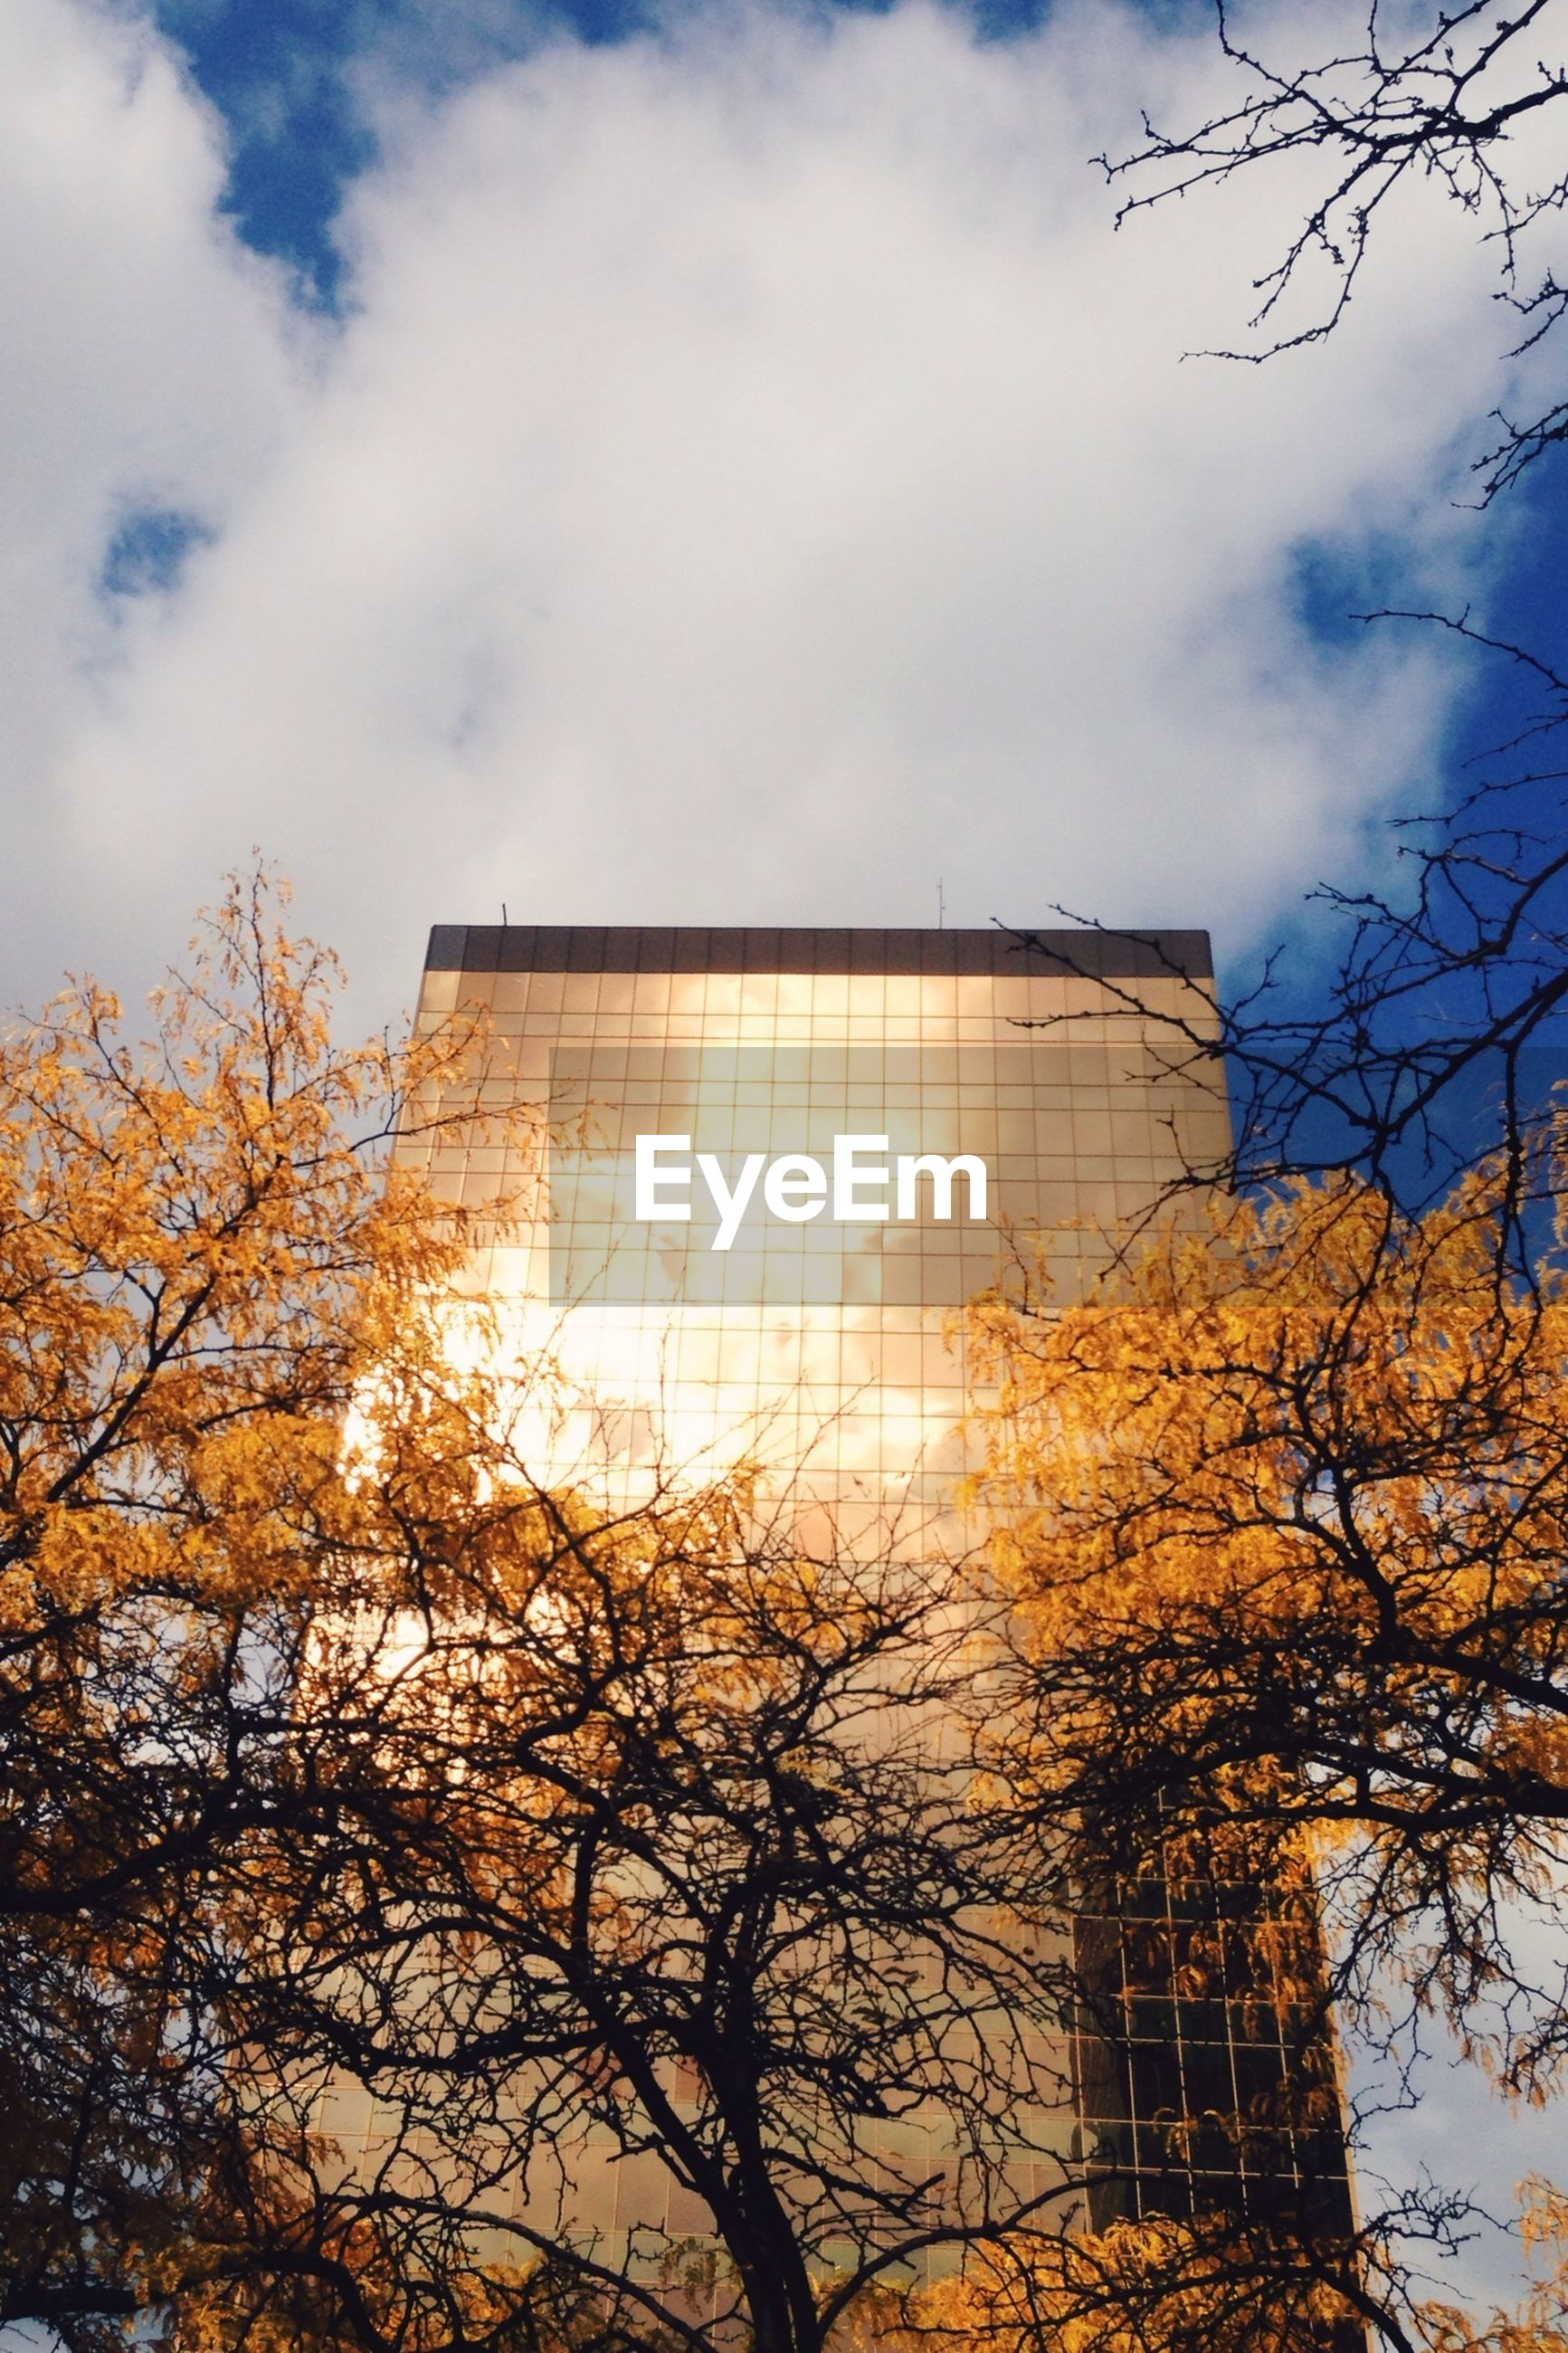 Low angle view of autumn trees and office building against cloudy sky